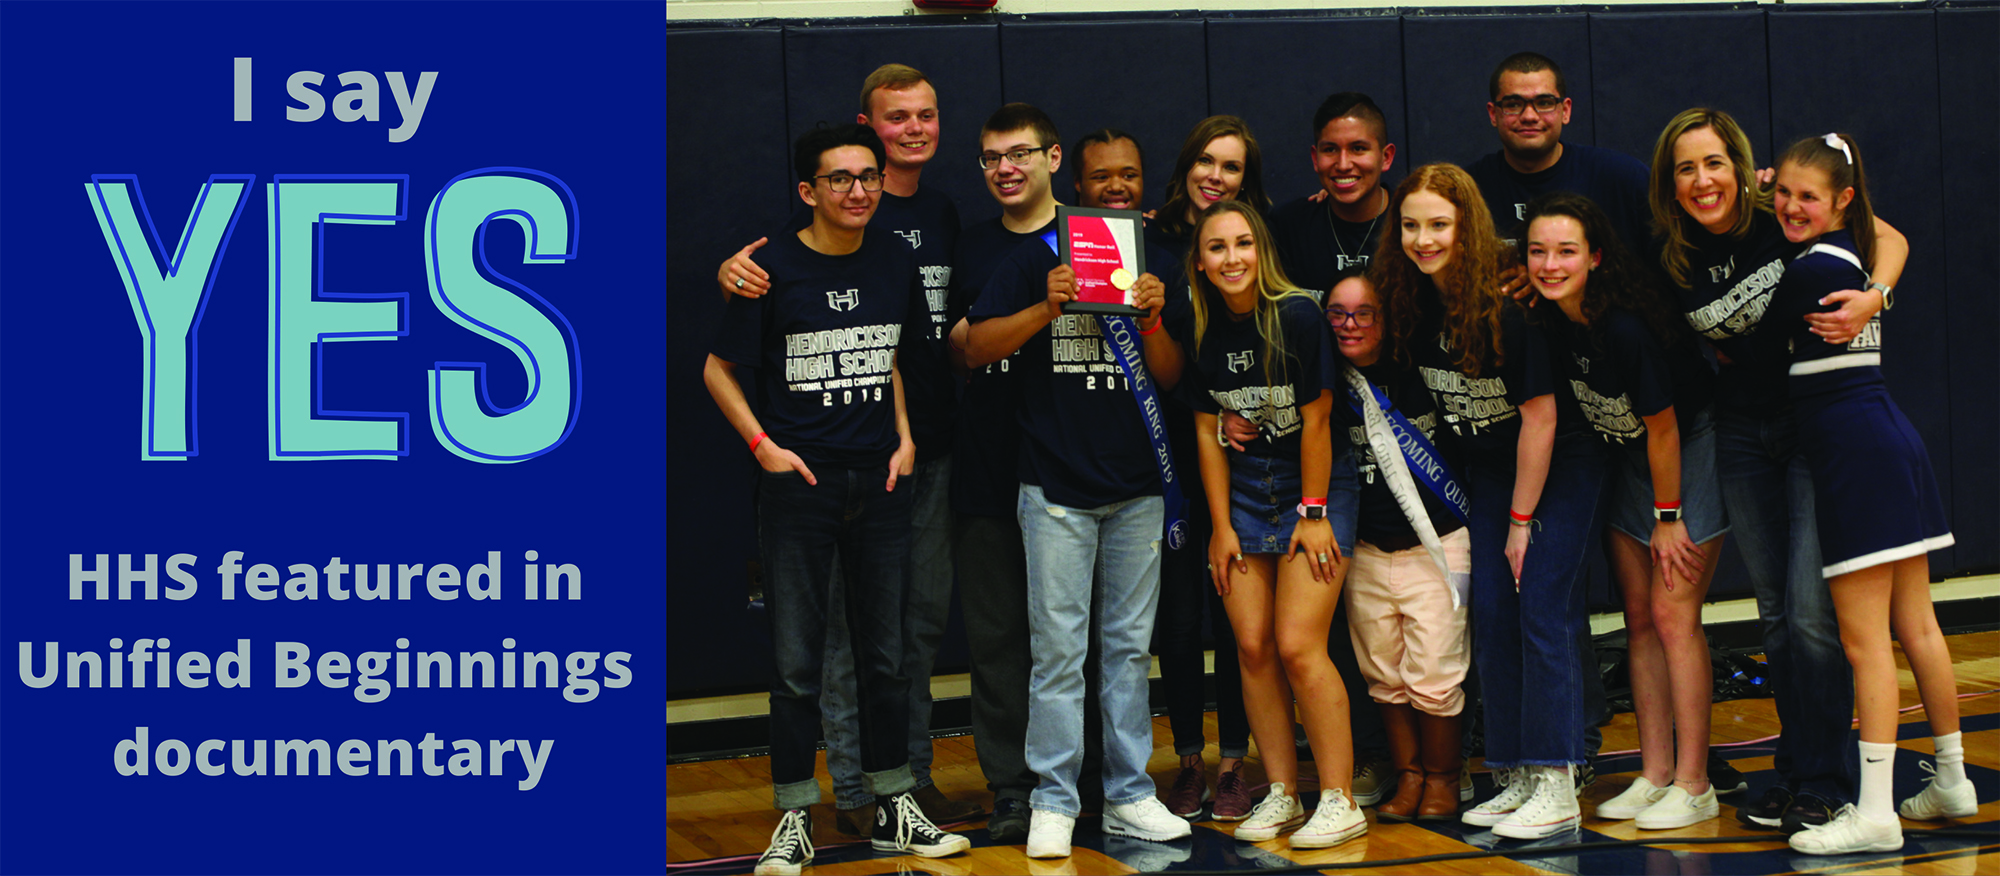 I say YES: HHS featured in Unified Beginnings documentary